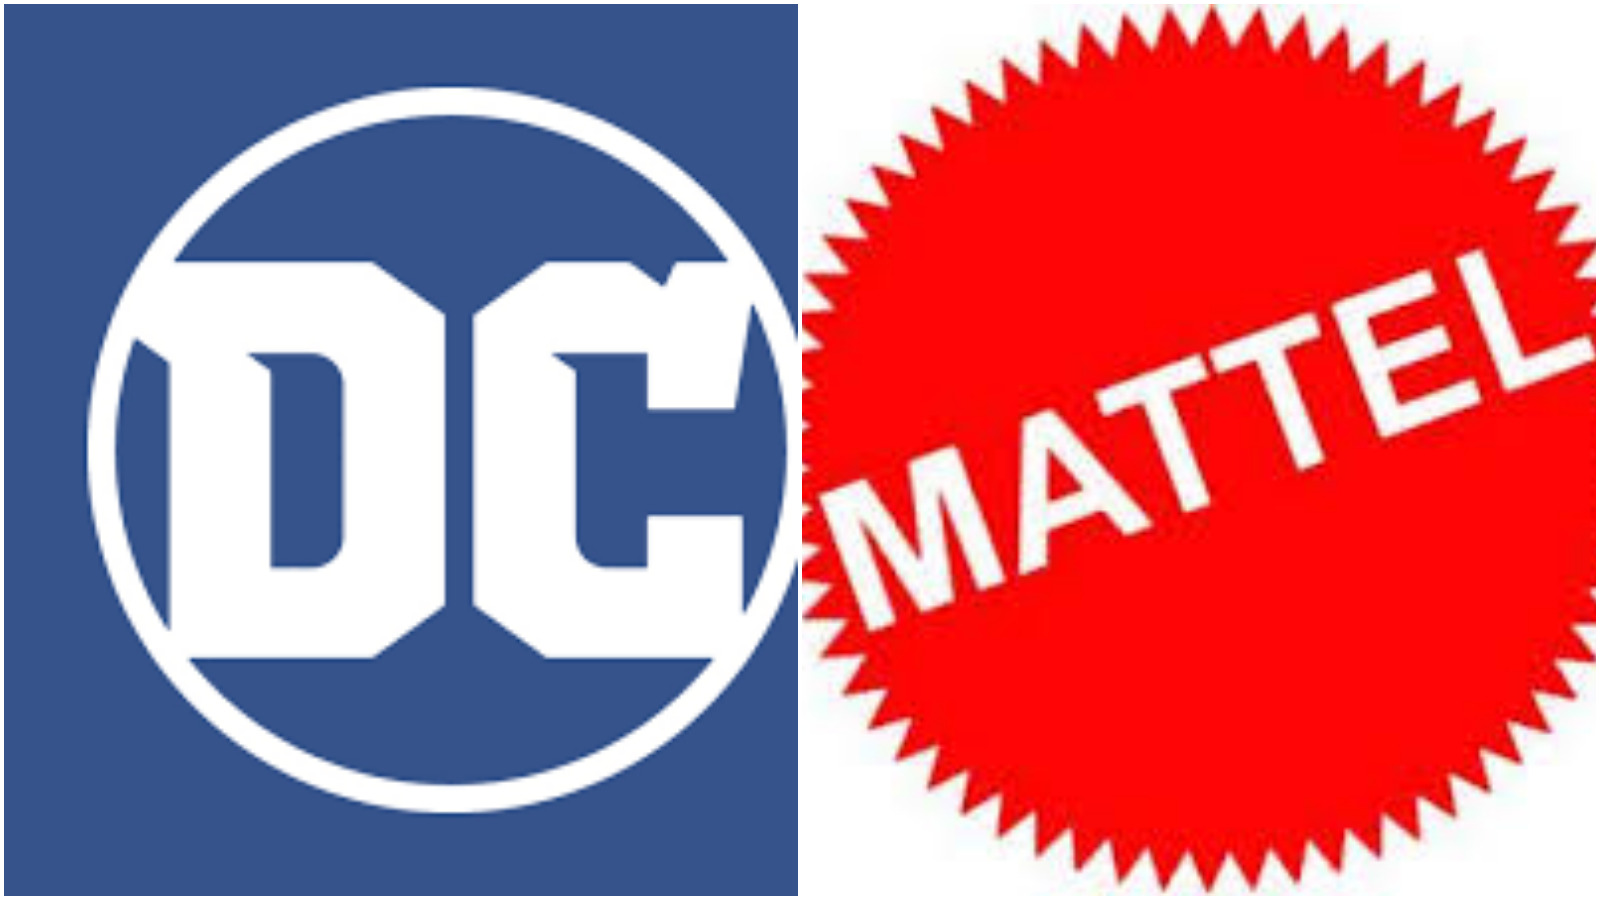 DC Mattel Collage